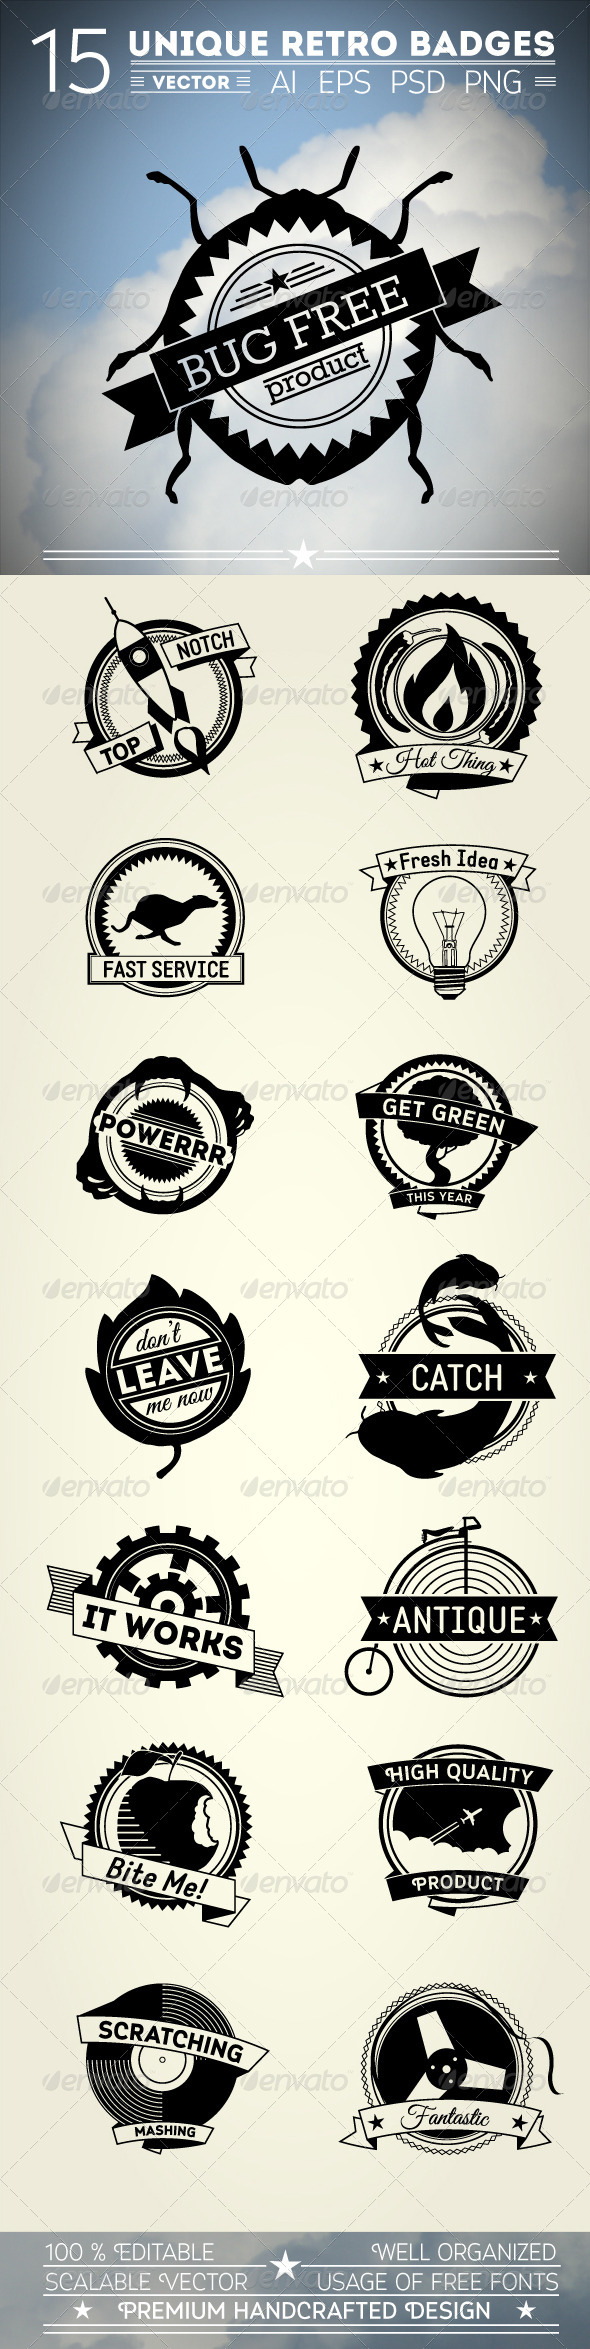 GraphicRiver 15 Unique Retro Badges 5009496